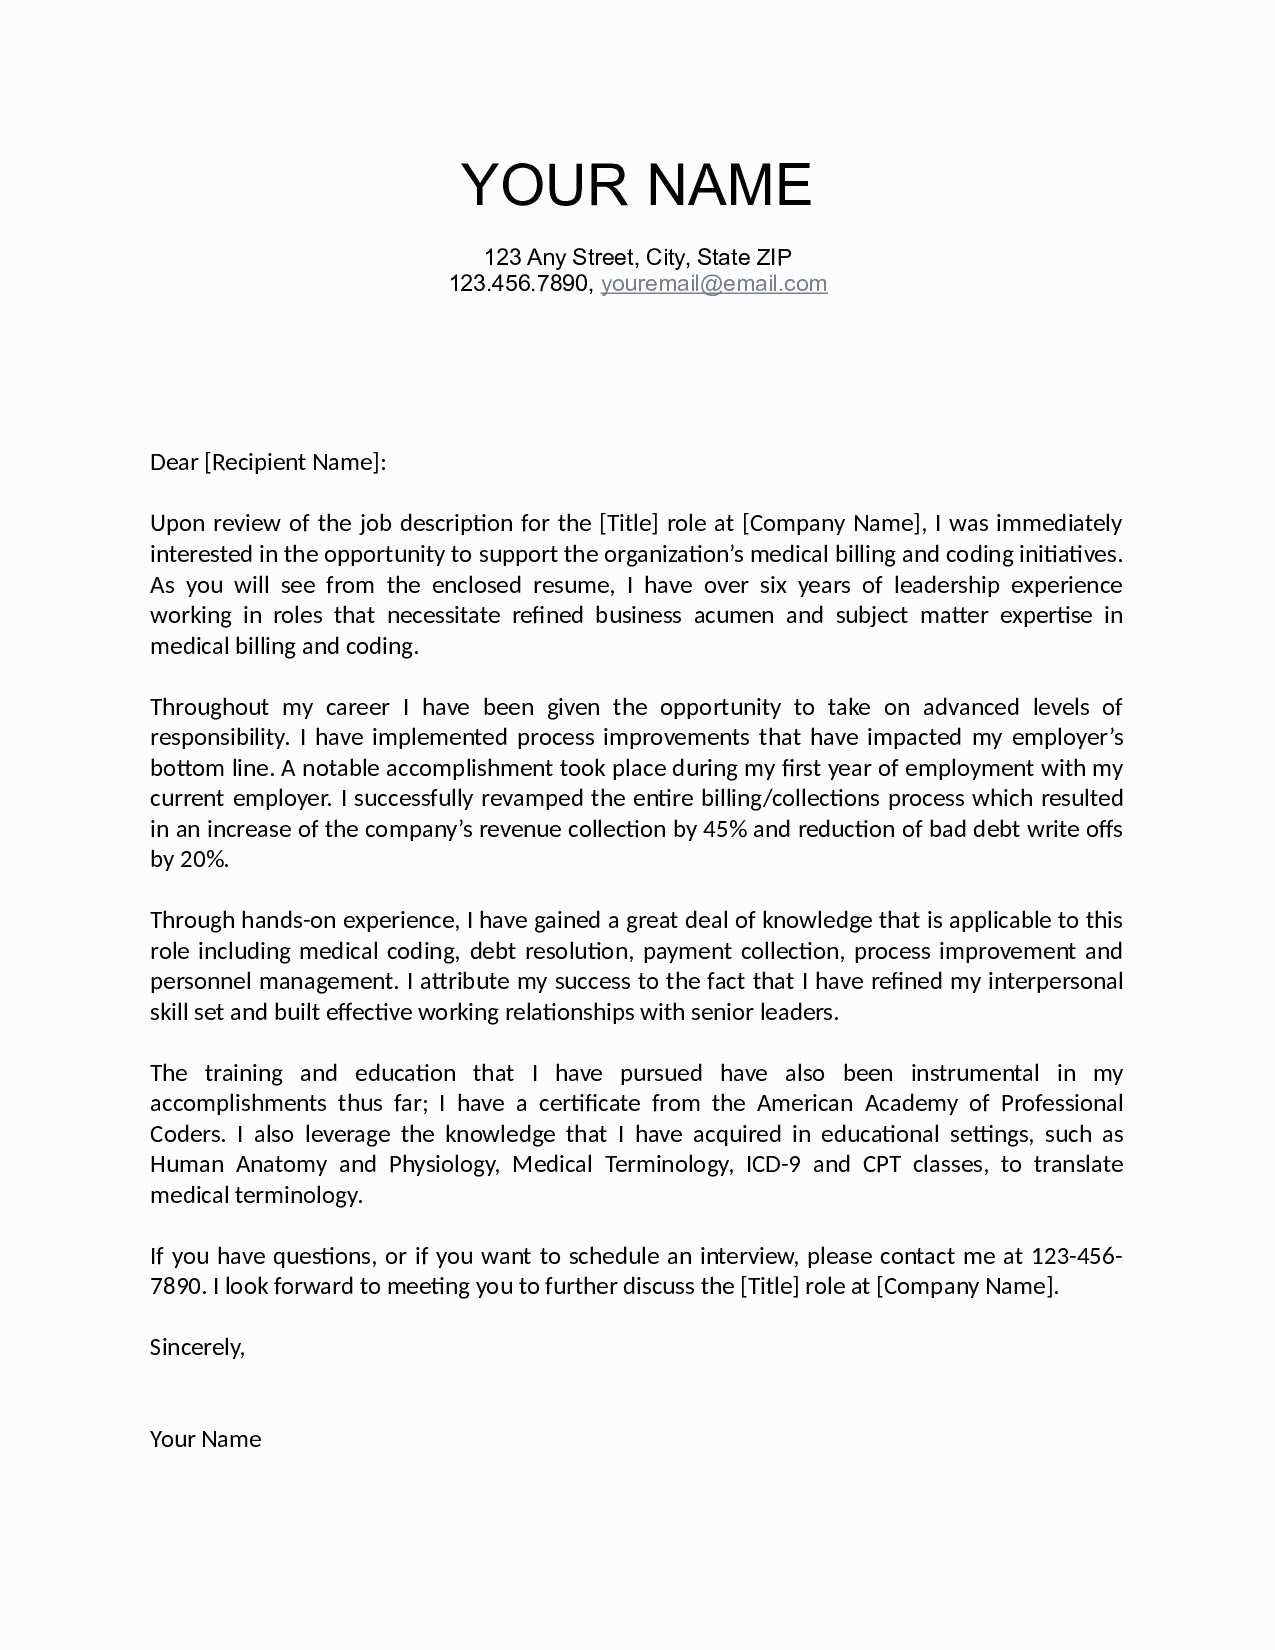 Volunteer Letter Template - Cover Letter Sample for A Volunteer Position Best Job Fer Letter